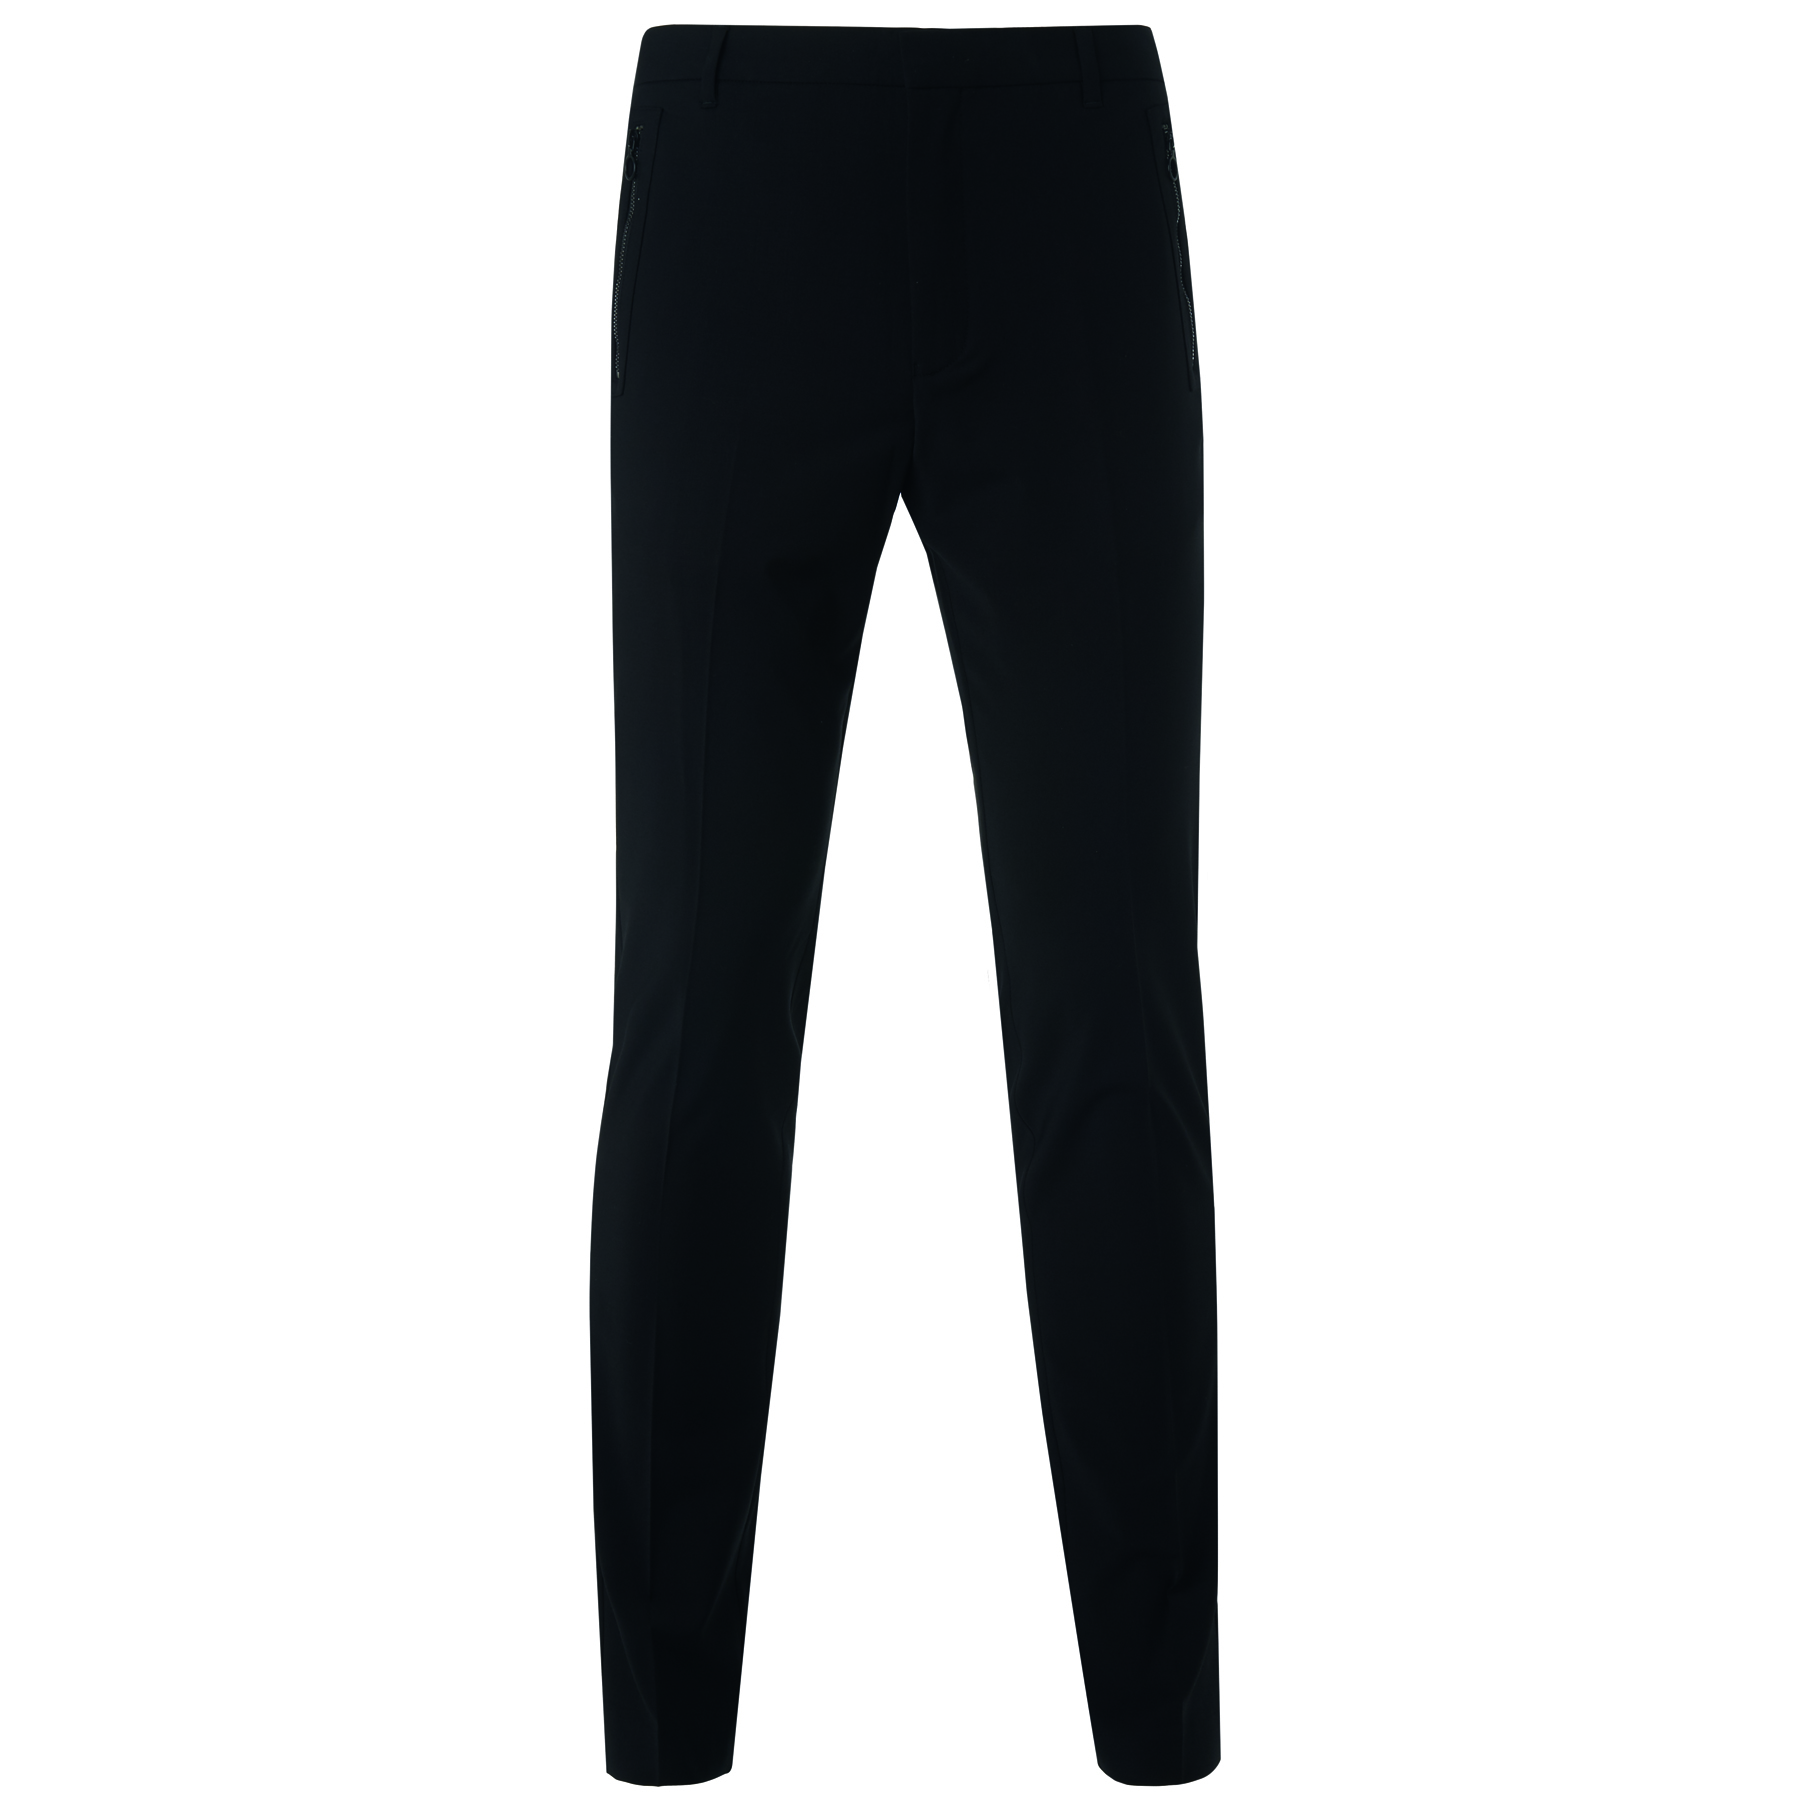 Black Formal Trousers (£79)